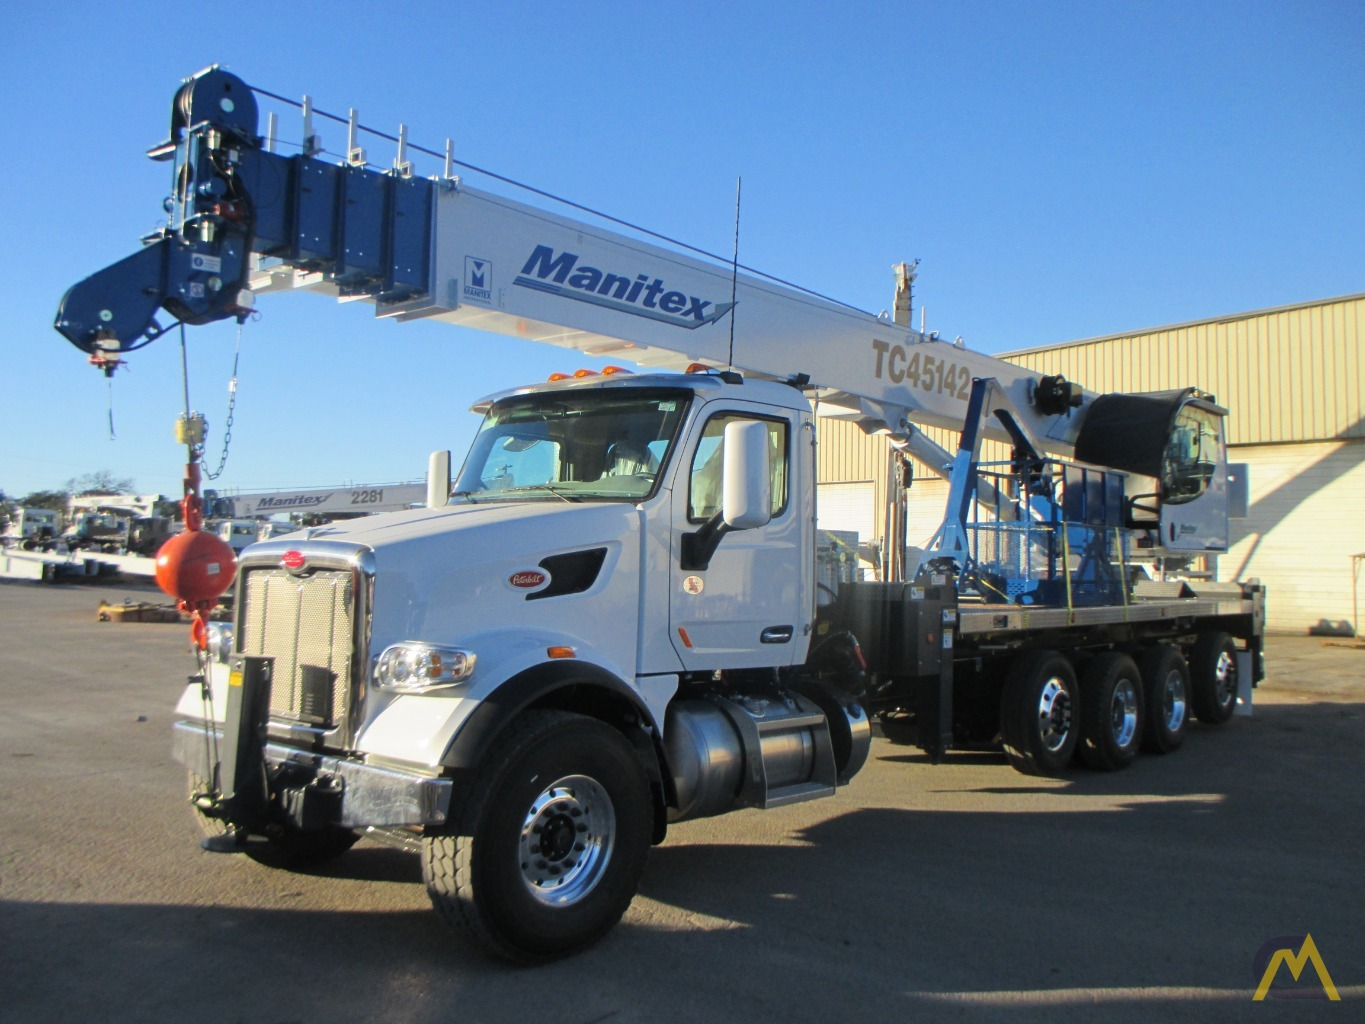 2019 Manitex TC45142 45-Ton Boom Truck Crane For Sale Trucks